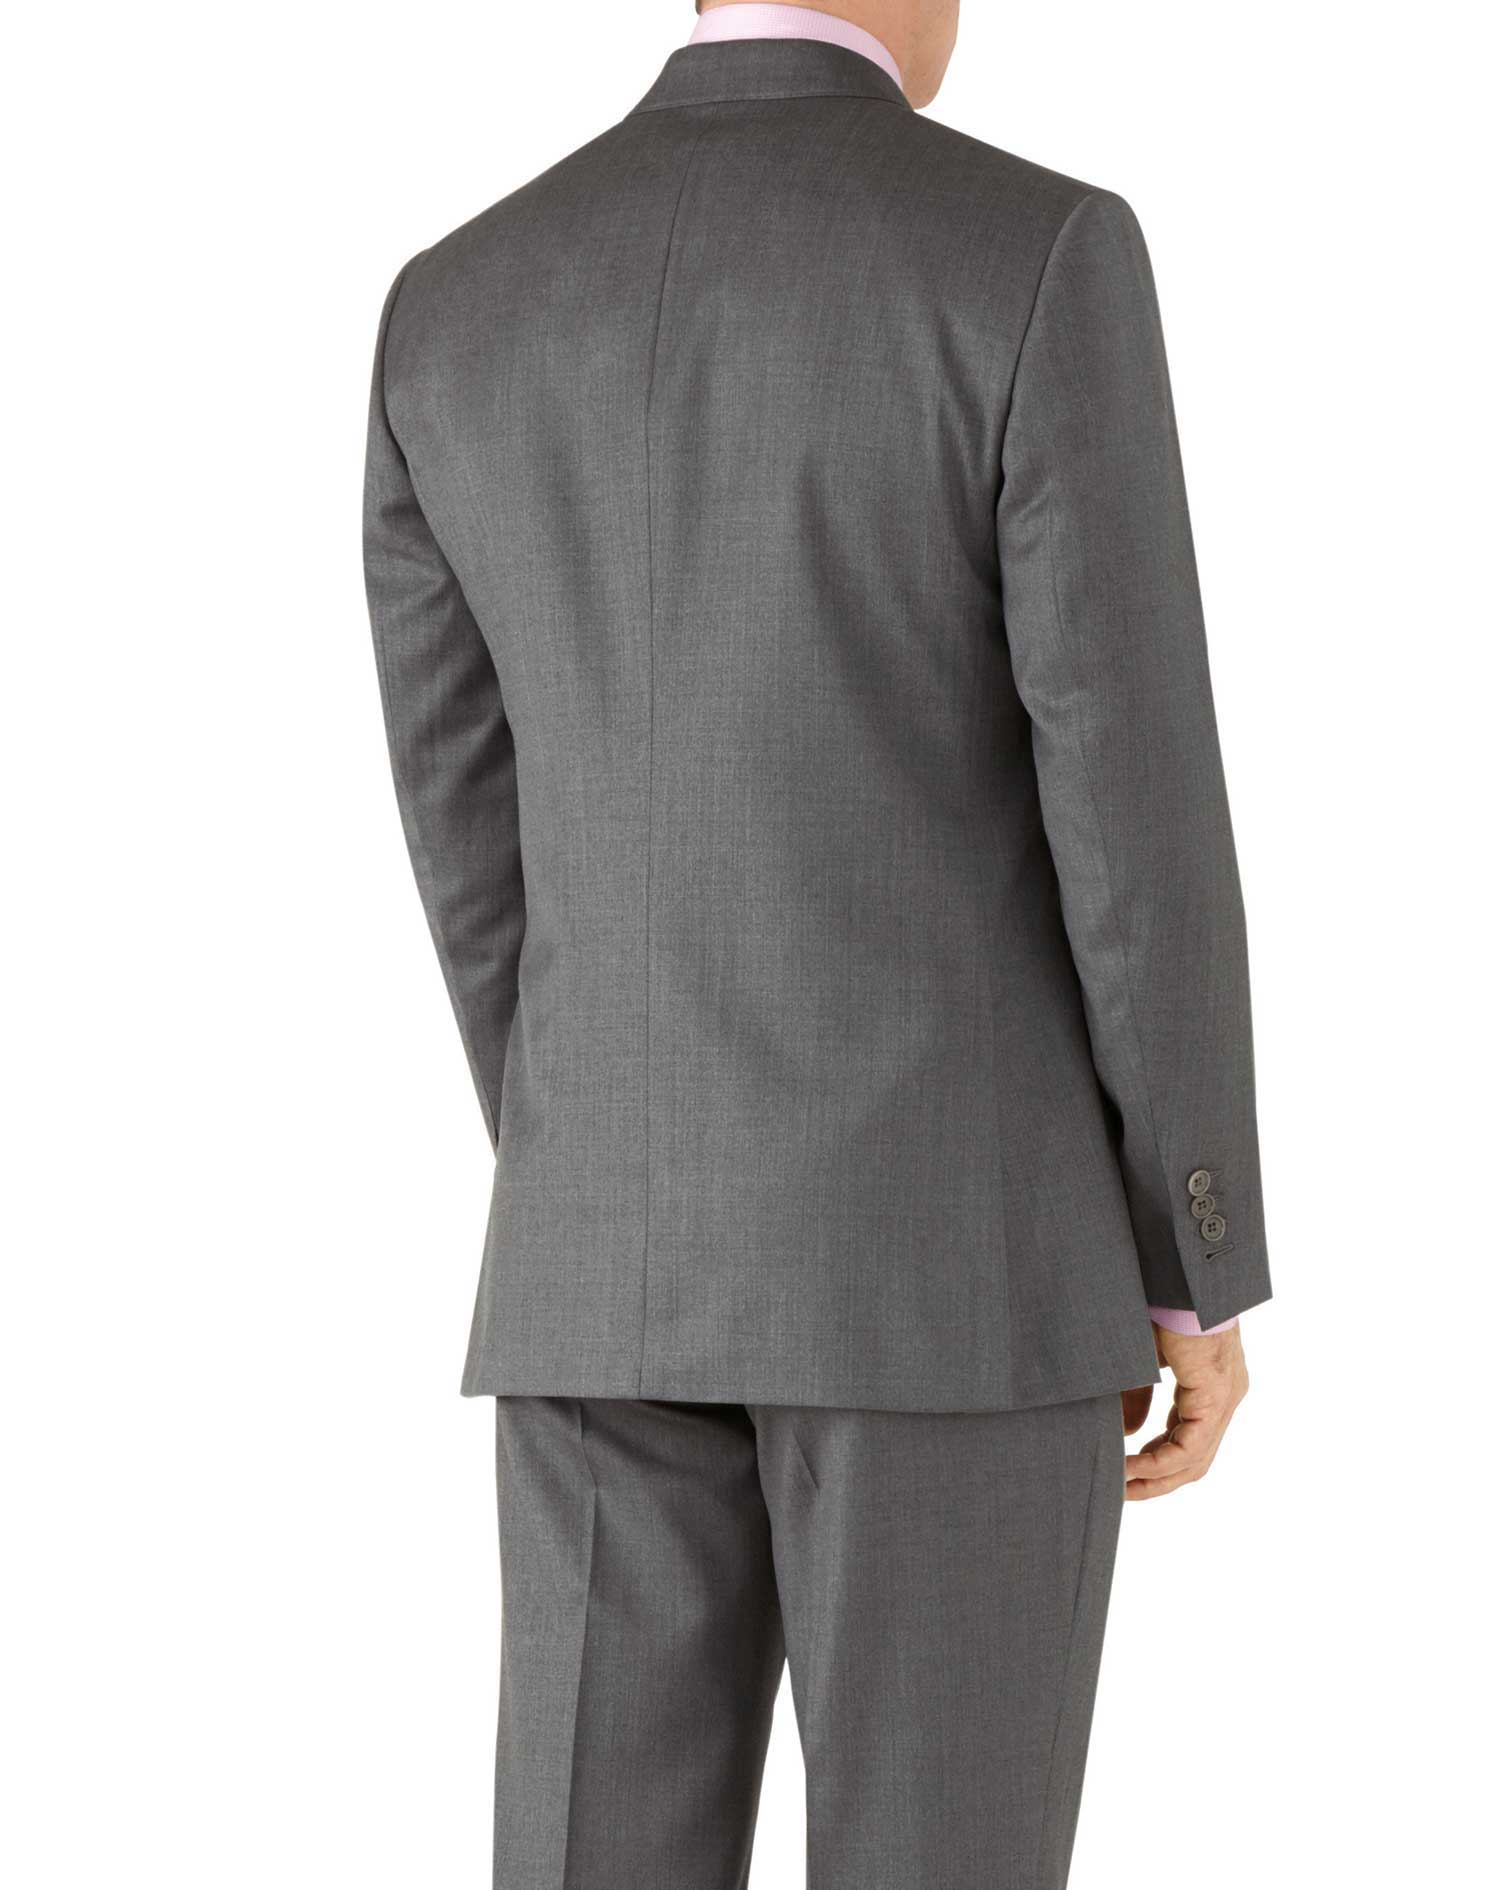 Grey classic fit Italian suit jacket